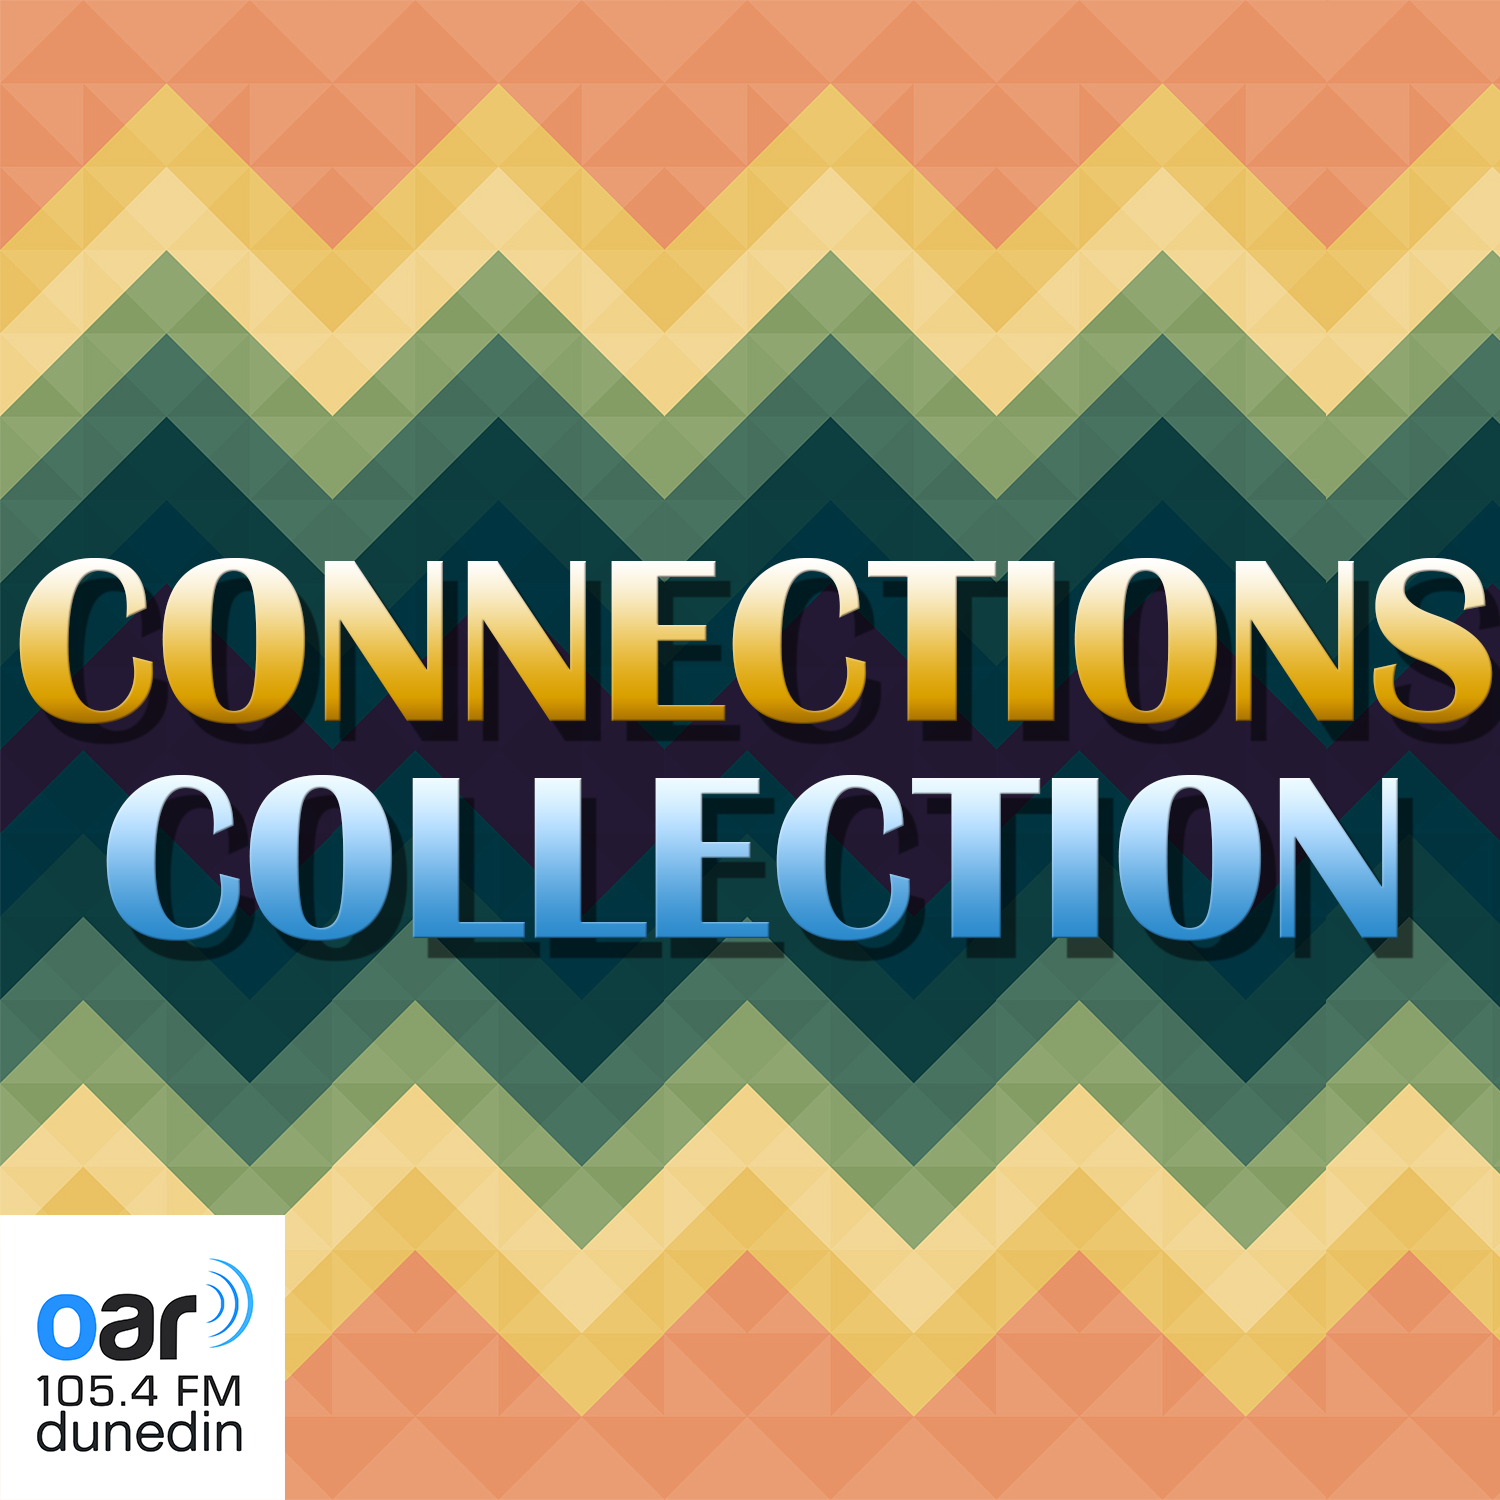 Connections Collections